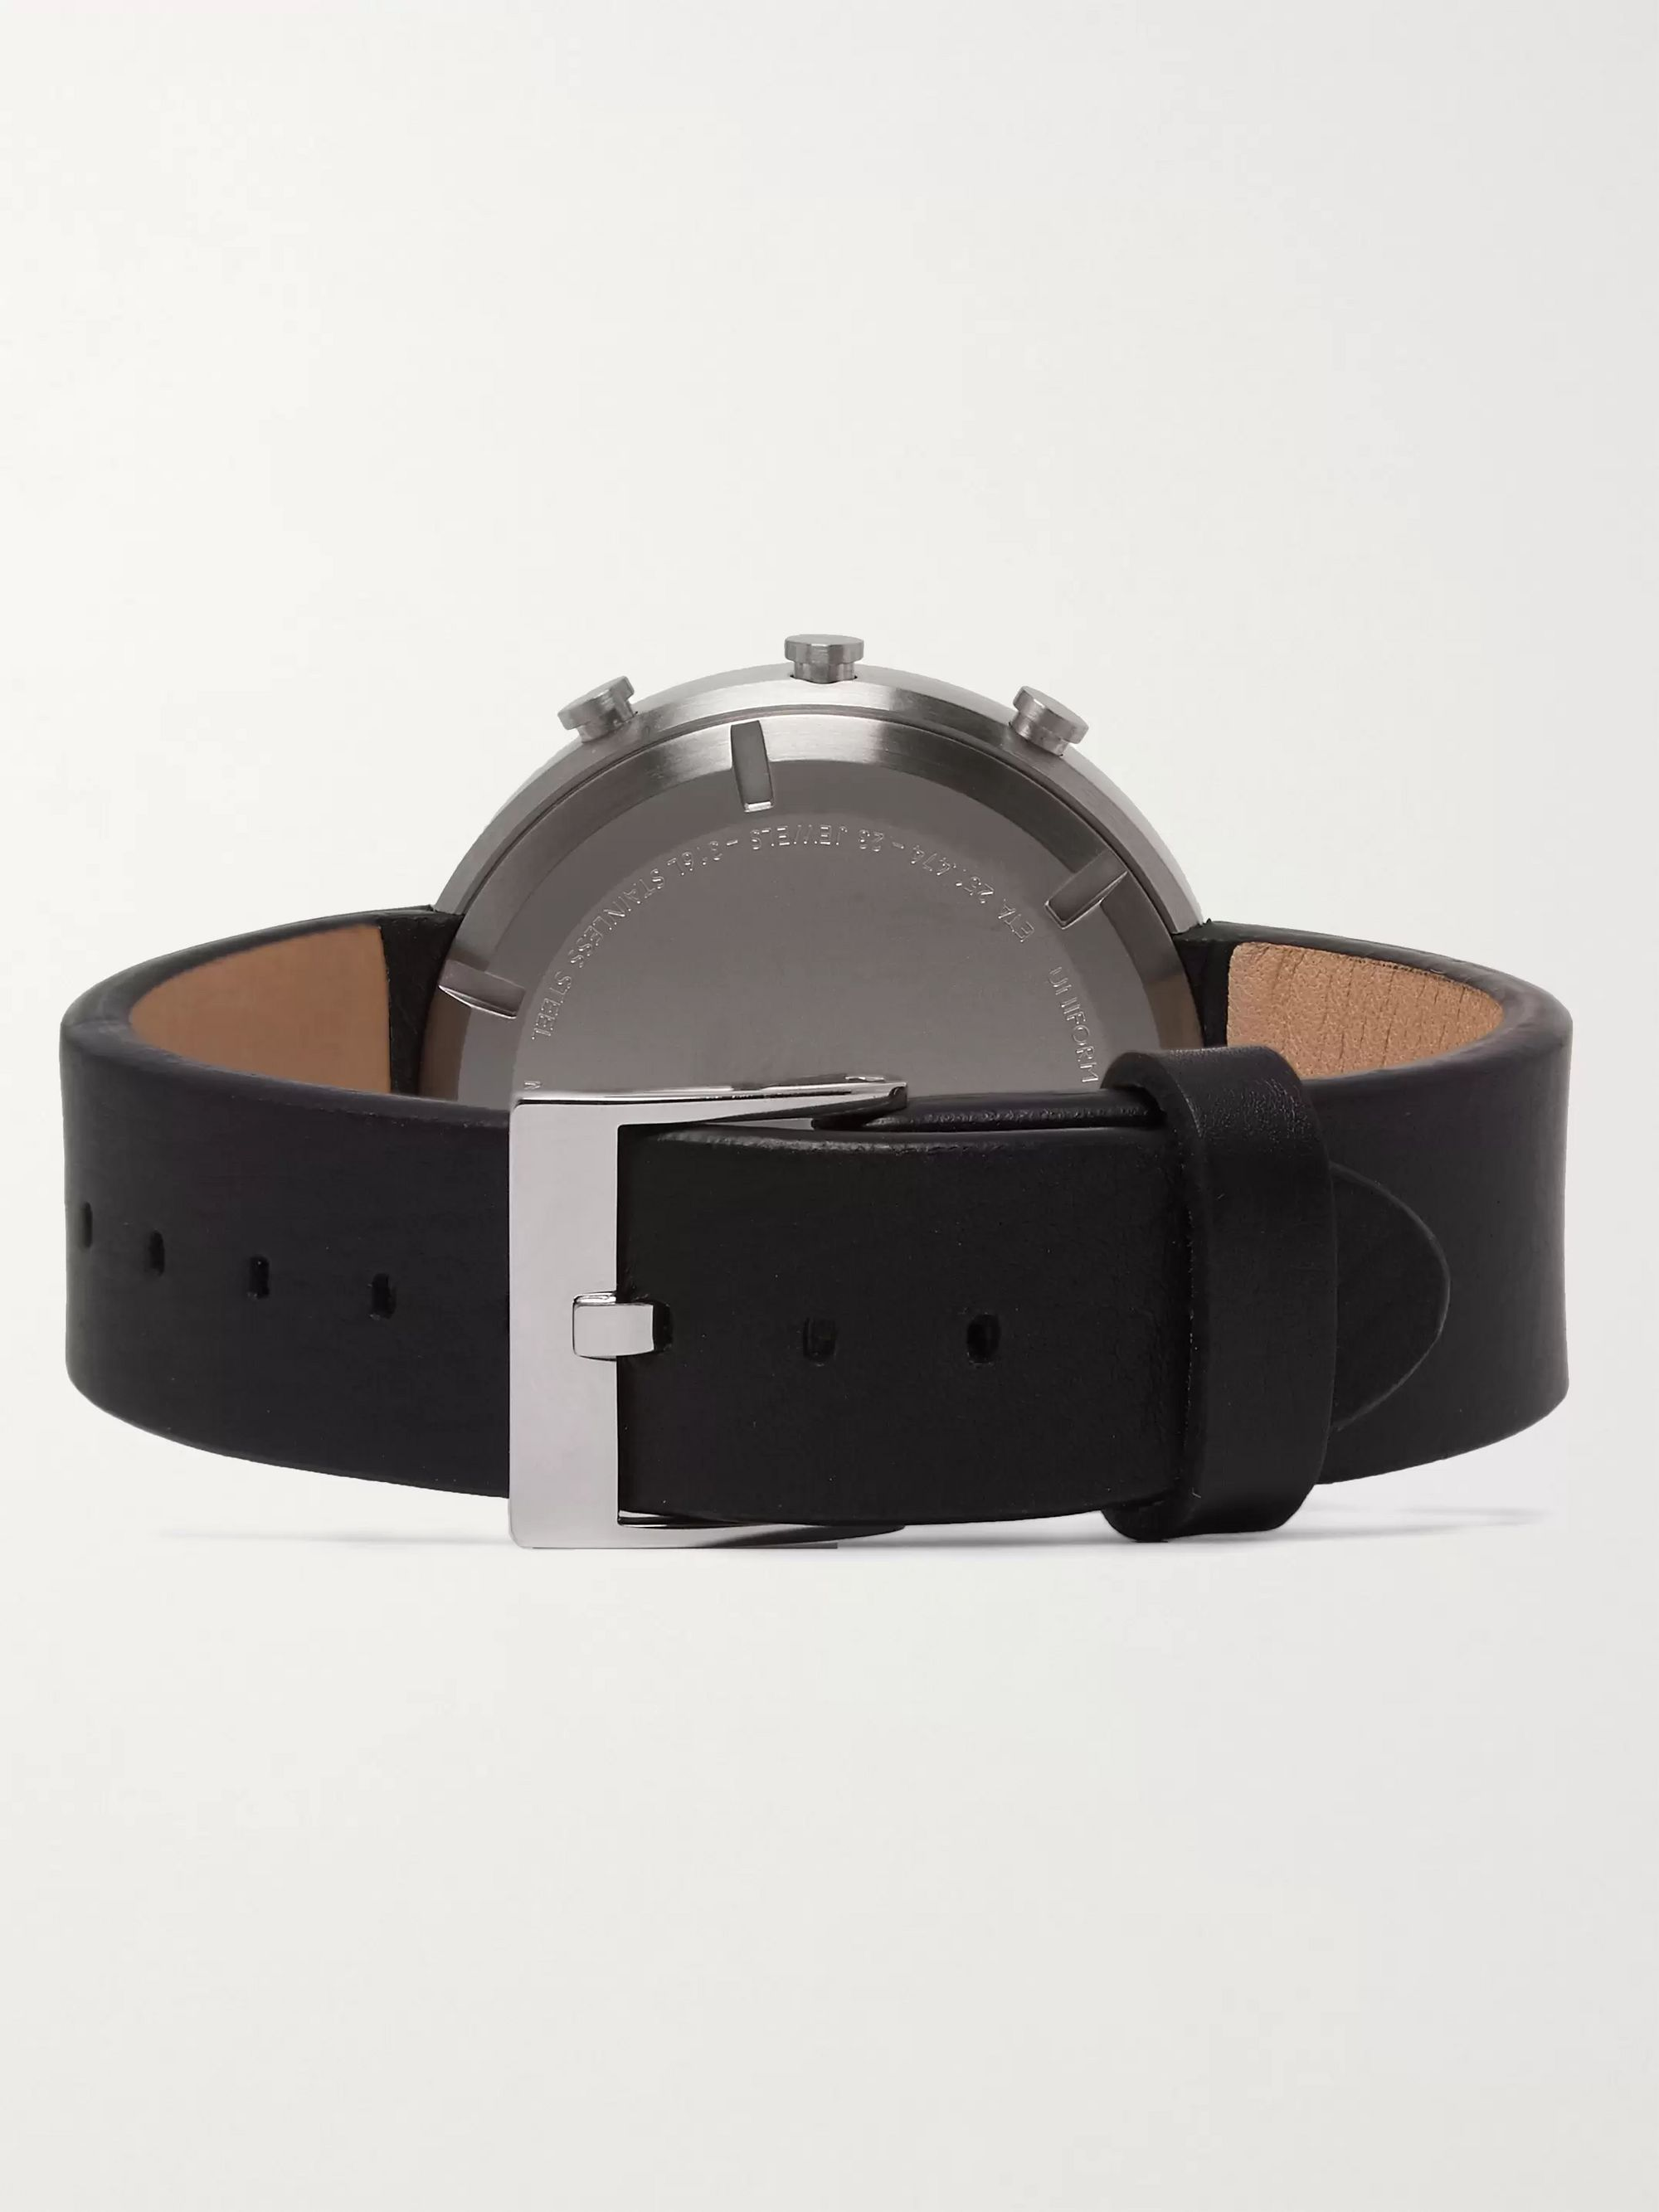 Uniform Wares M42 PreciDrive Stainless Steel And Leather Watch